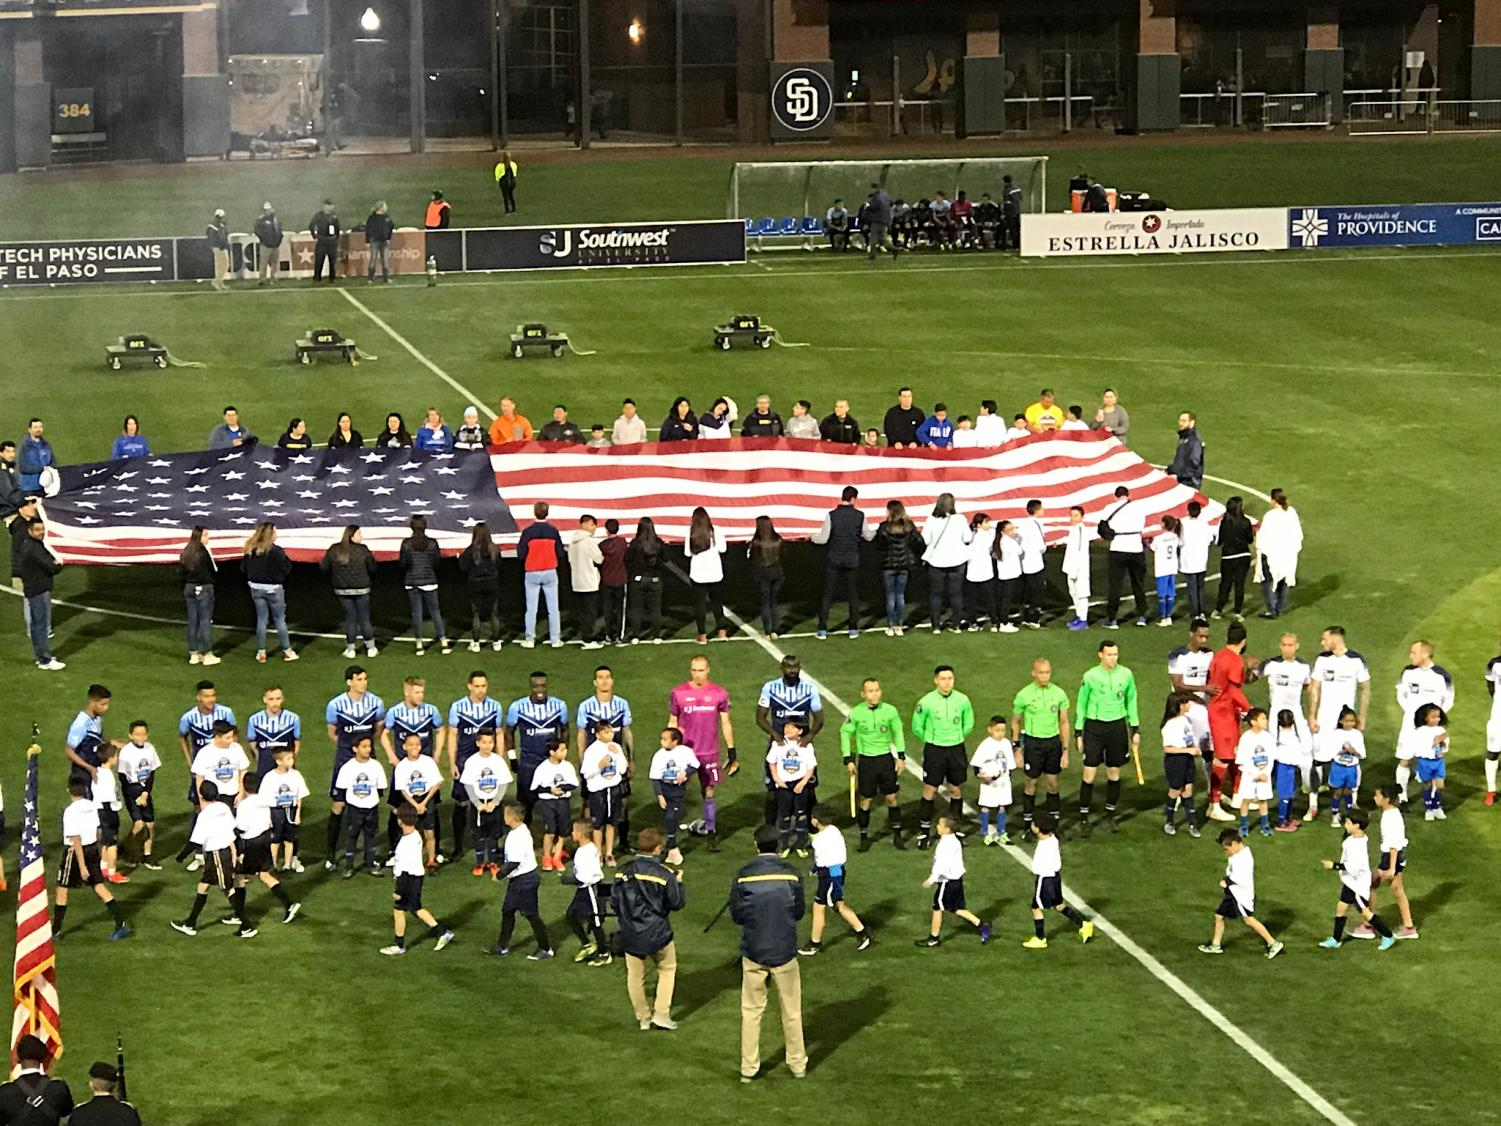 Locomotive+FC+and+OKC+Energy+FC+line+up+with+referees+for+the+national+anthem.+